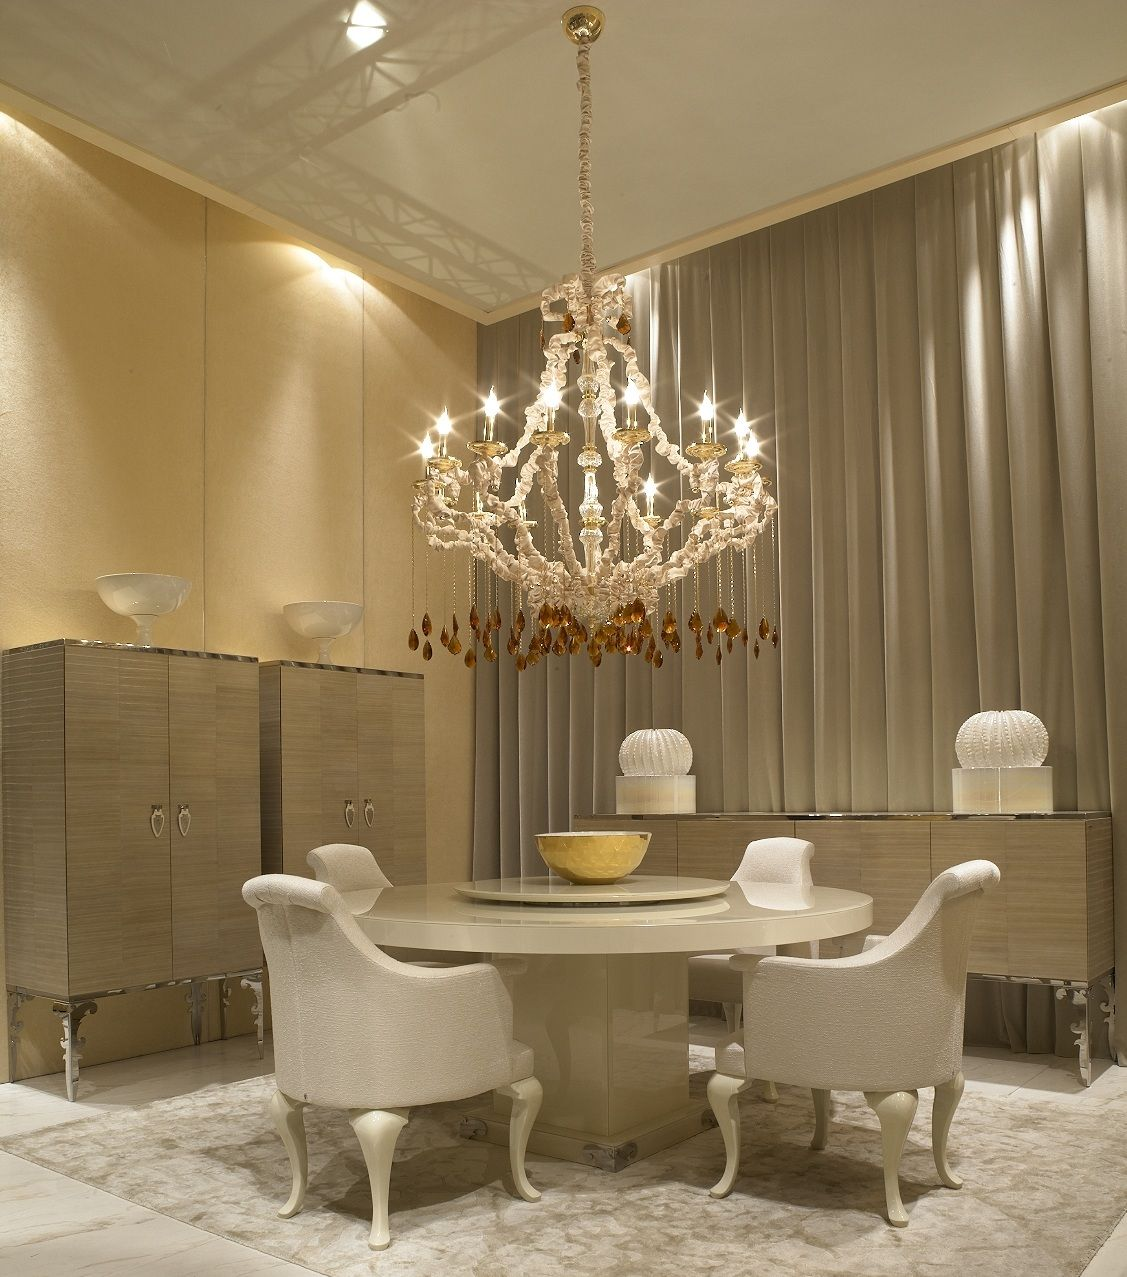 126 Custom Luxury Dining Room Interior Designs: Luxe Italian Designer Interiors, Sharing Designer Home